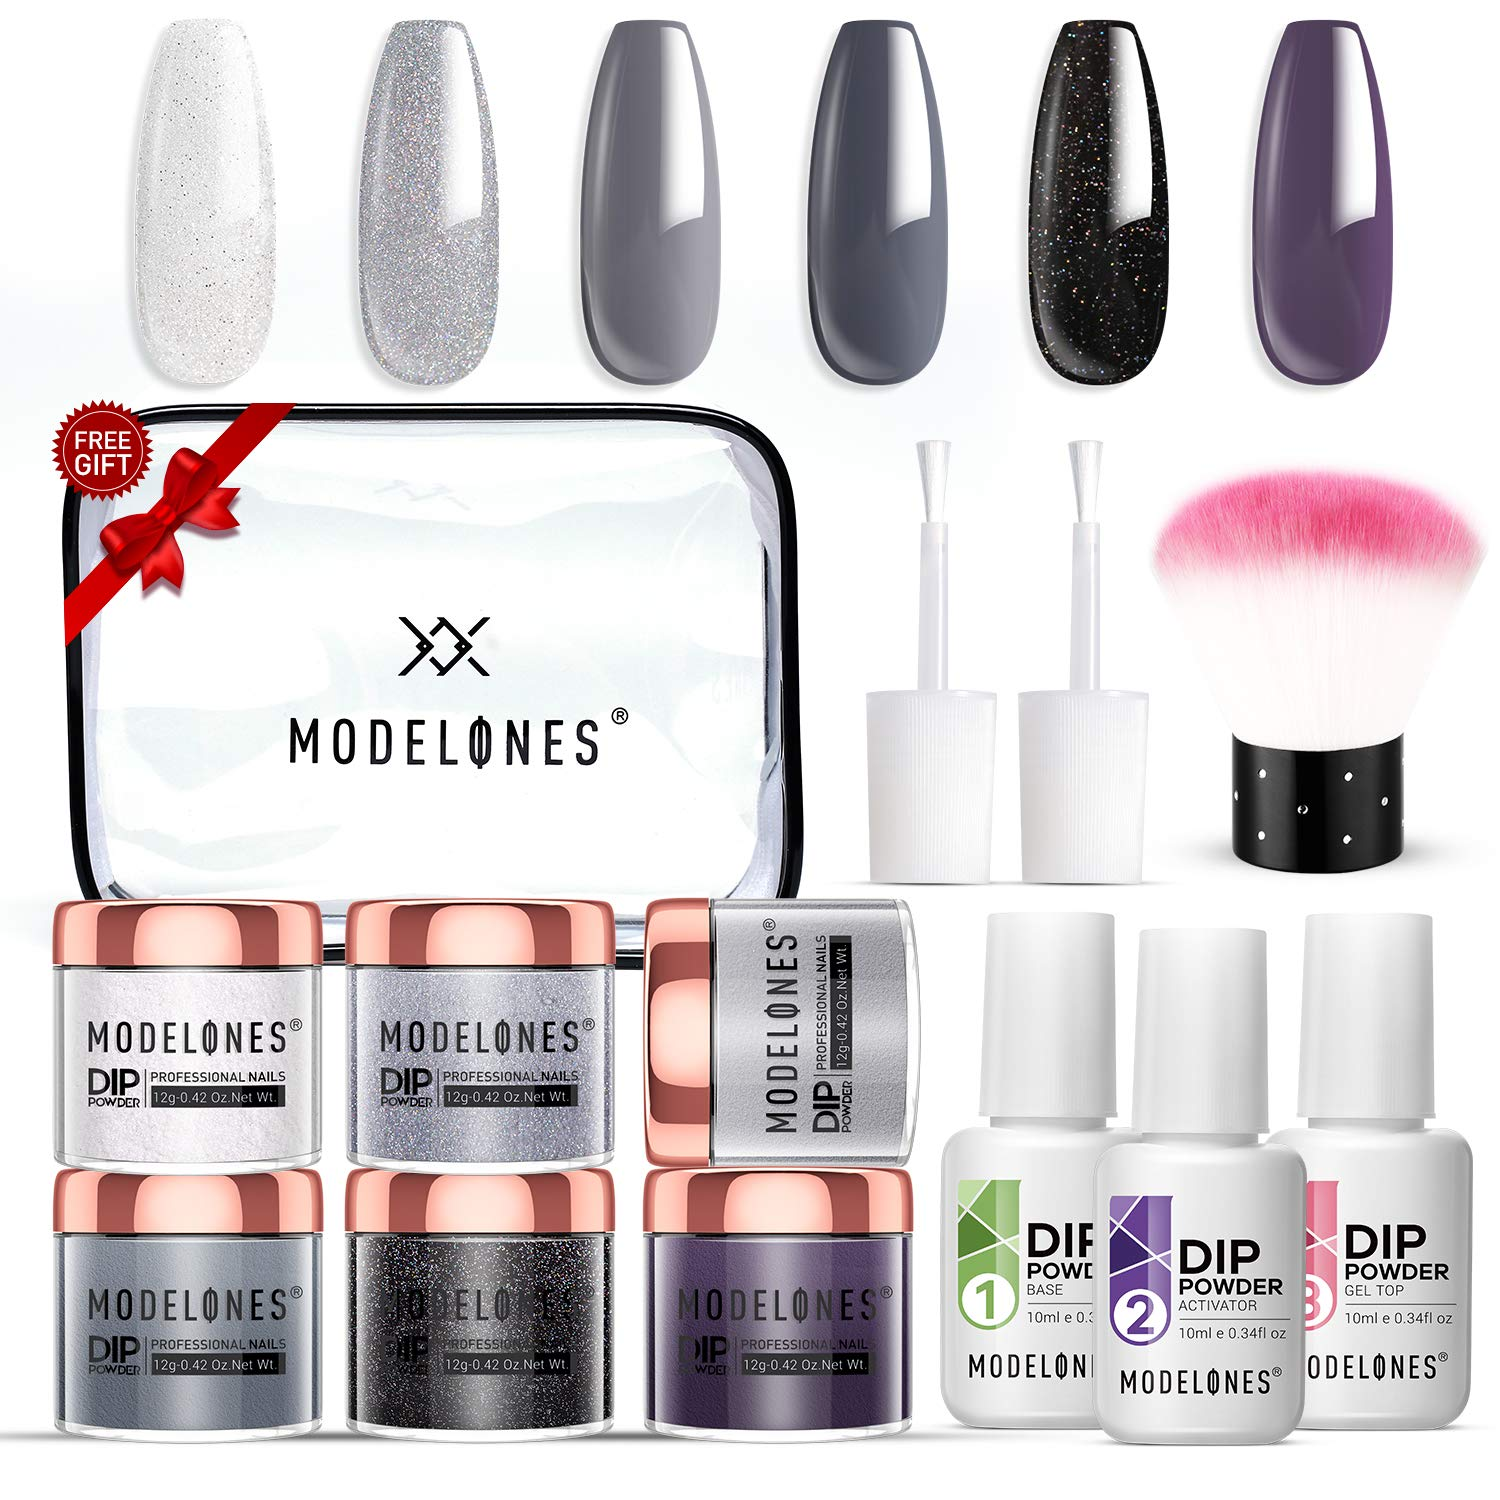 Dipping Powder Starter Kit with 6 Color, Dipping Nail Starter Kit Dip System Acrylic Dip Nail Kit for French Nail Style No Lamp Needed Quick Do Nail at Home Portable Kit for Travel